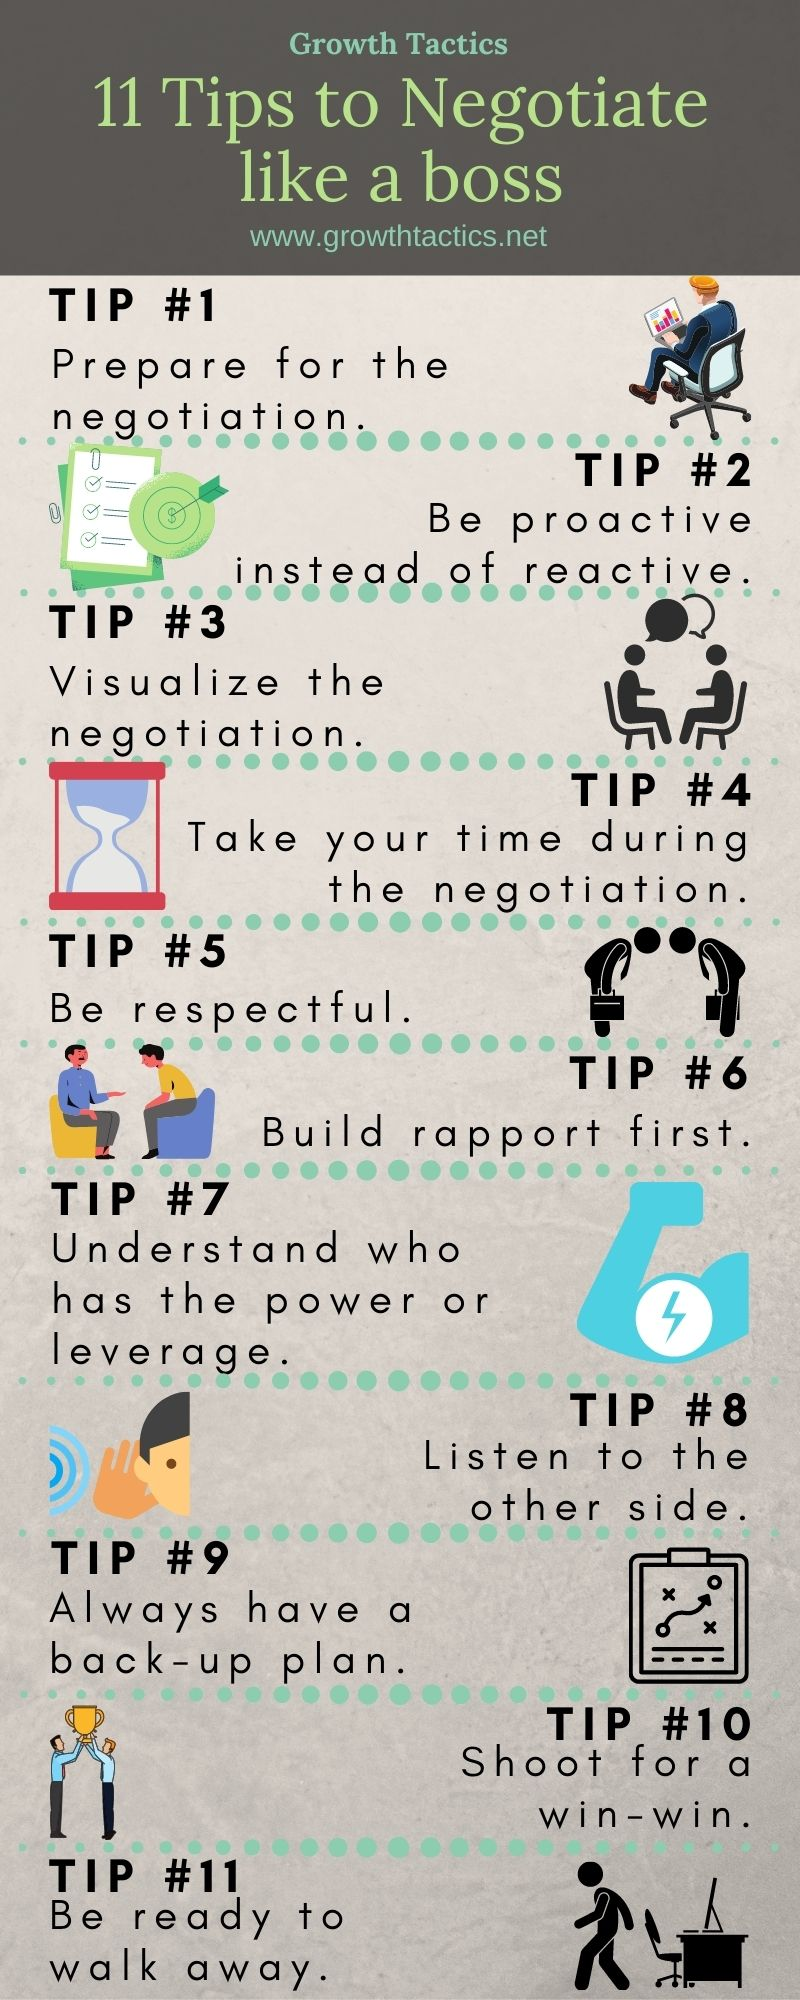 11 Tips to Negotiate like a boss infographic.